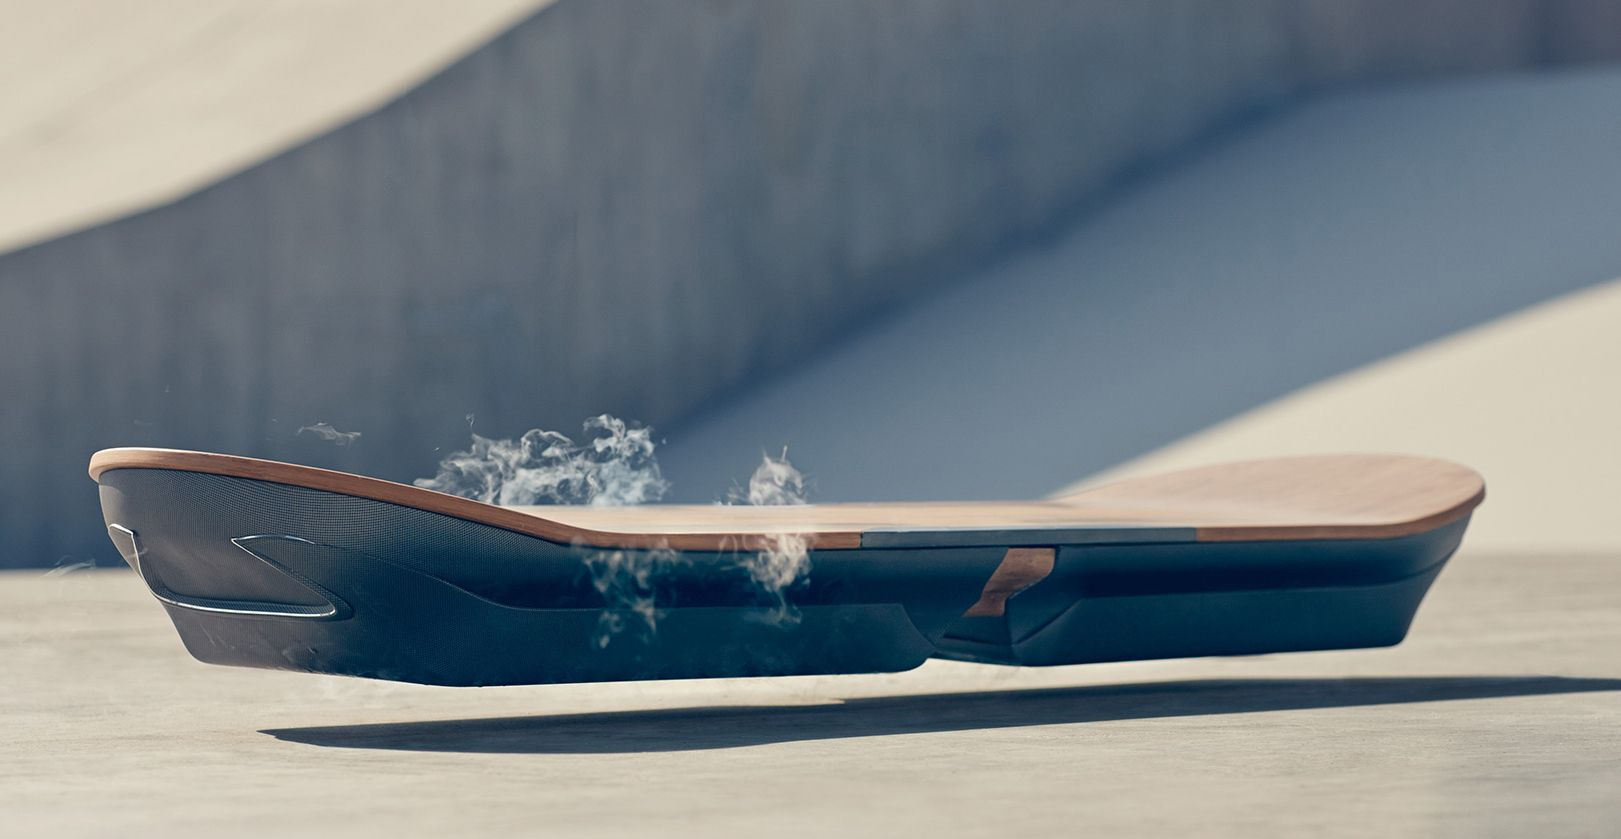 lexus, hoverboard, slide, amazing in motion, back to the future